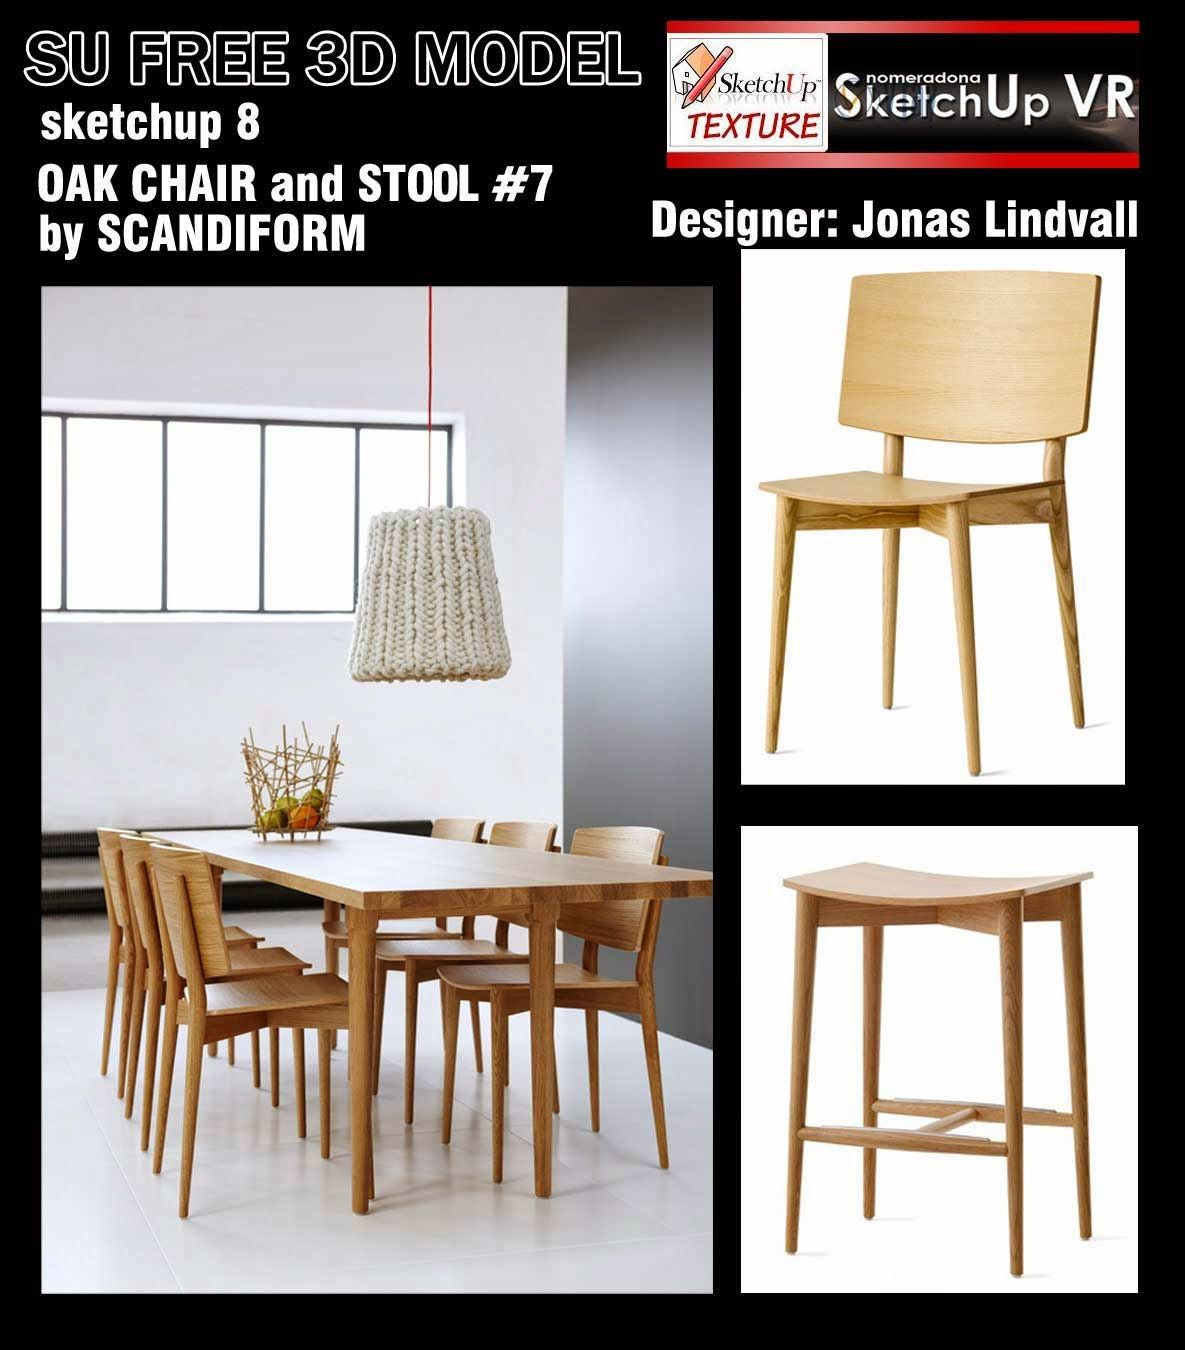 SKETCHUP TEXTURE: Free Sketchup 3d Models Oak Chairs And Stool #7